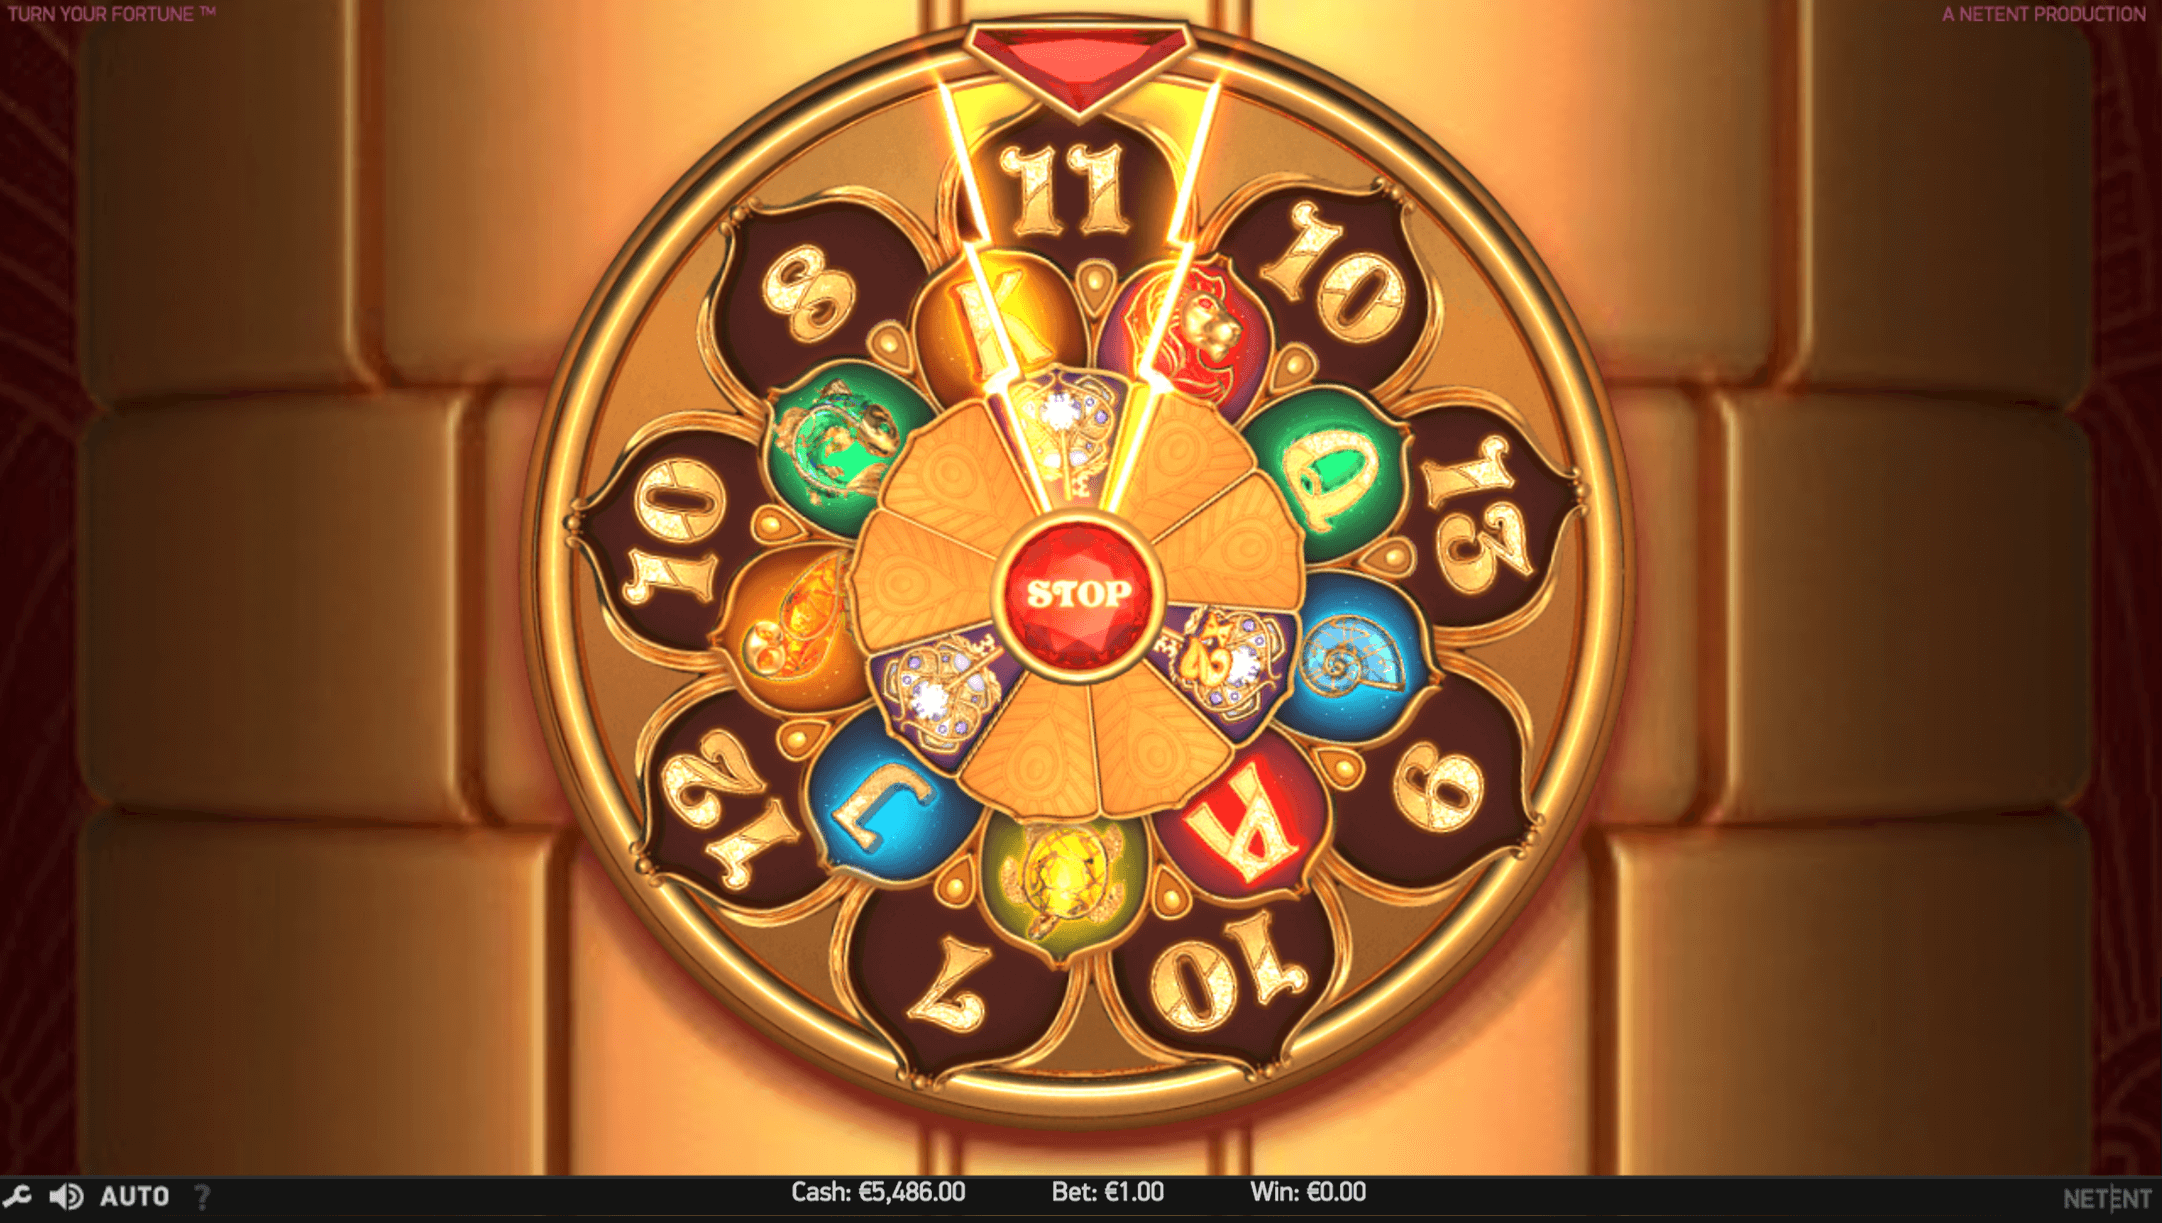 turn-your-fortune-wheel